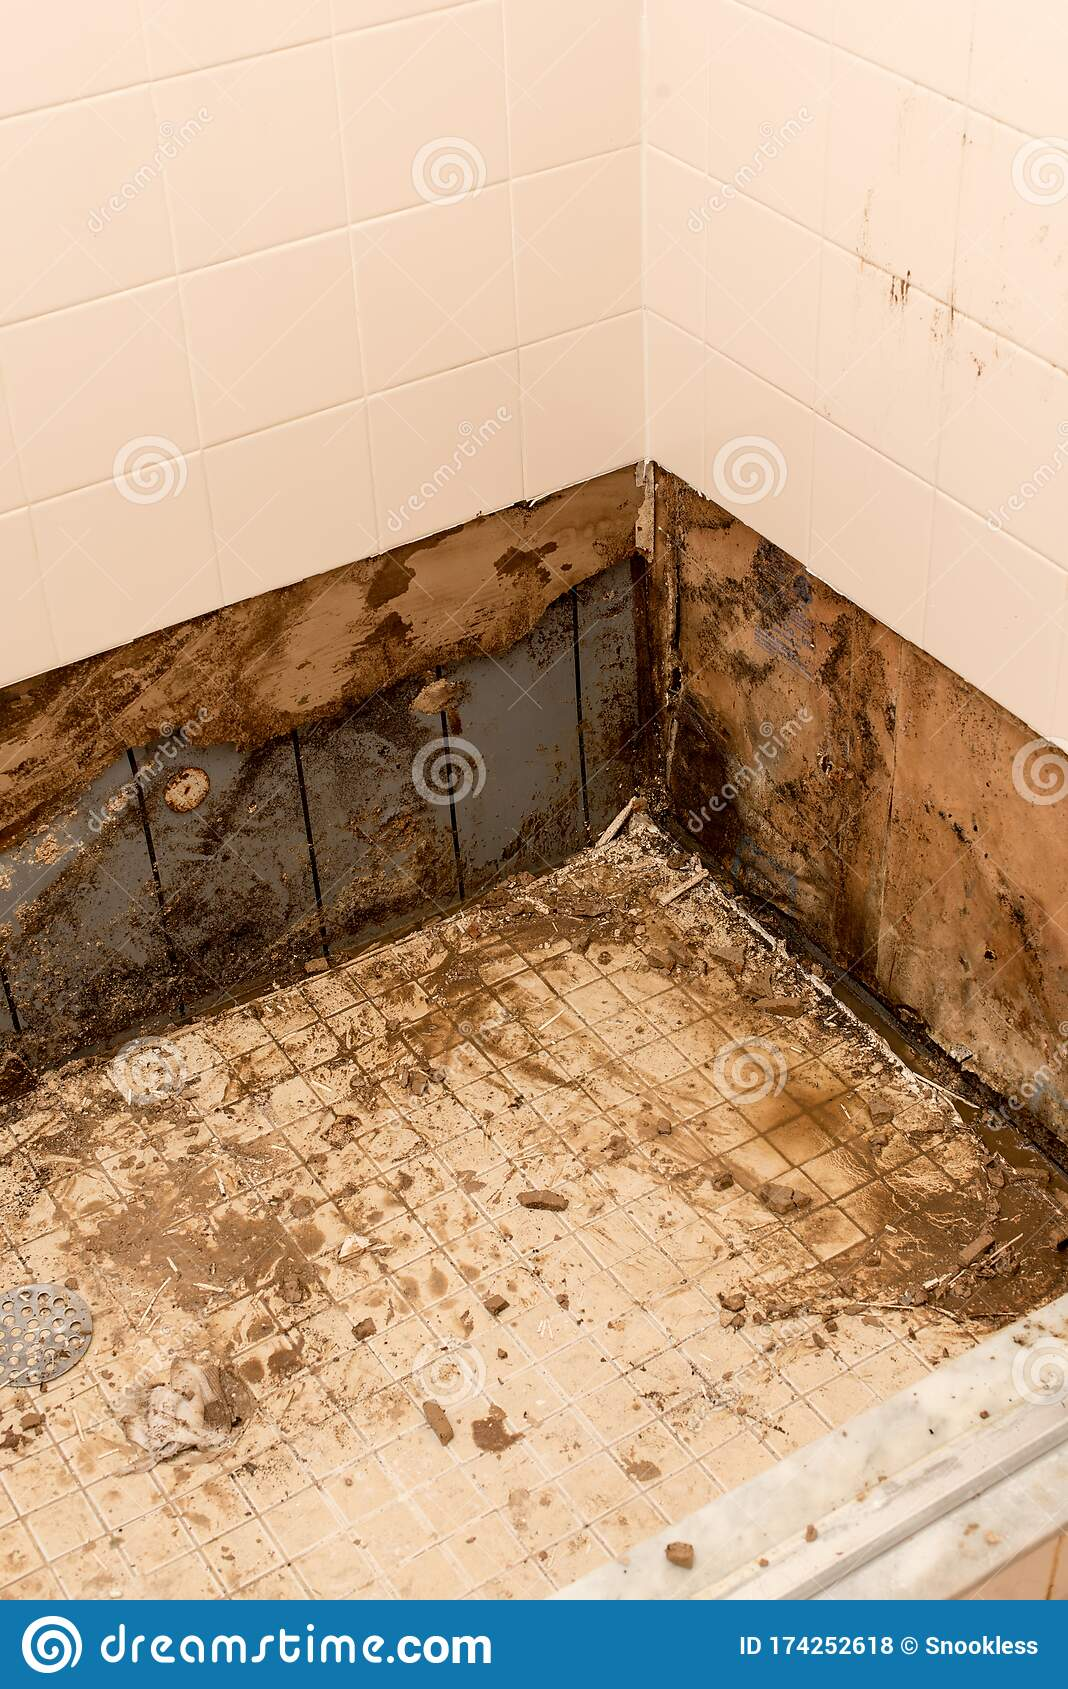 Shower Pan Damage Or Repair Stock Photo Image Of Pipes Care 174252618